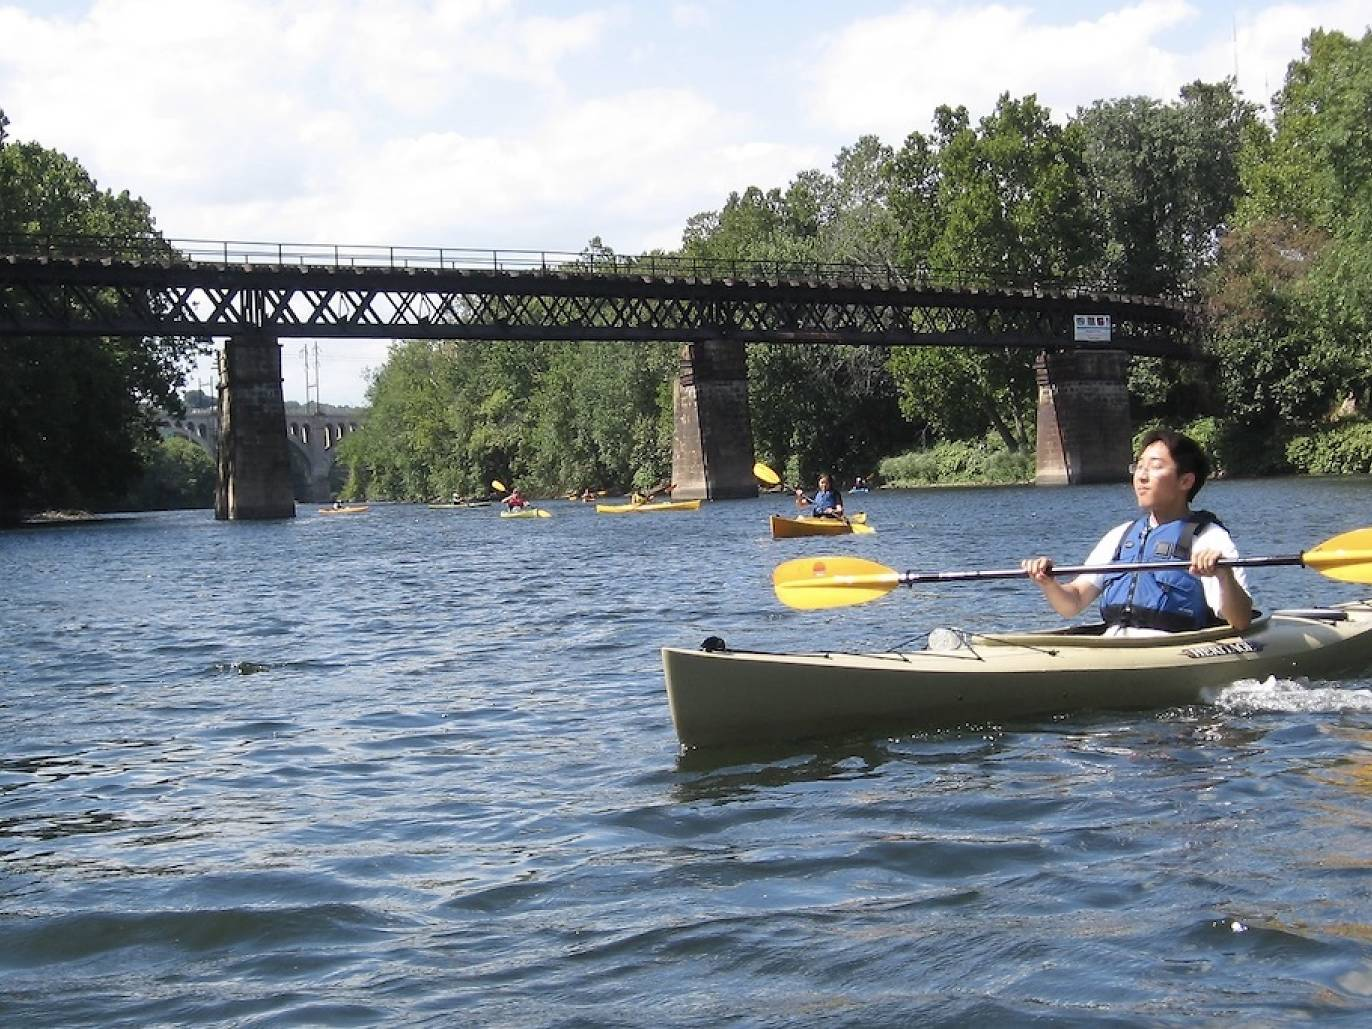 Hidden River Outfitters is the place to go when you want to kayak in Philadelphia on the Schuylkill River.